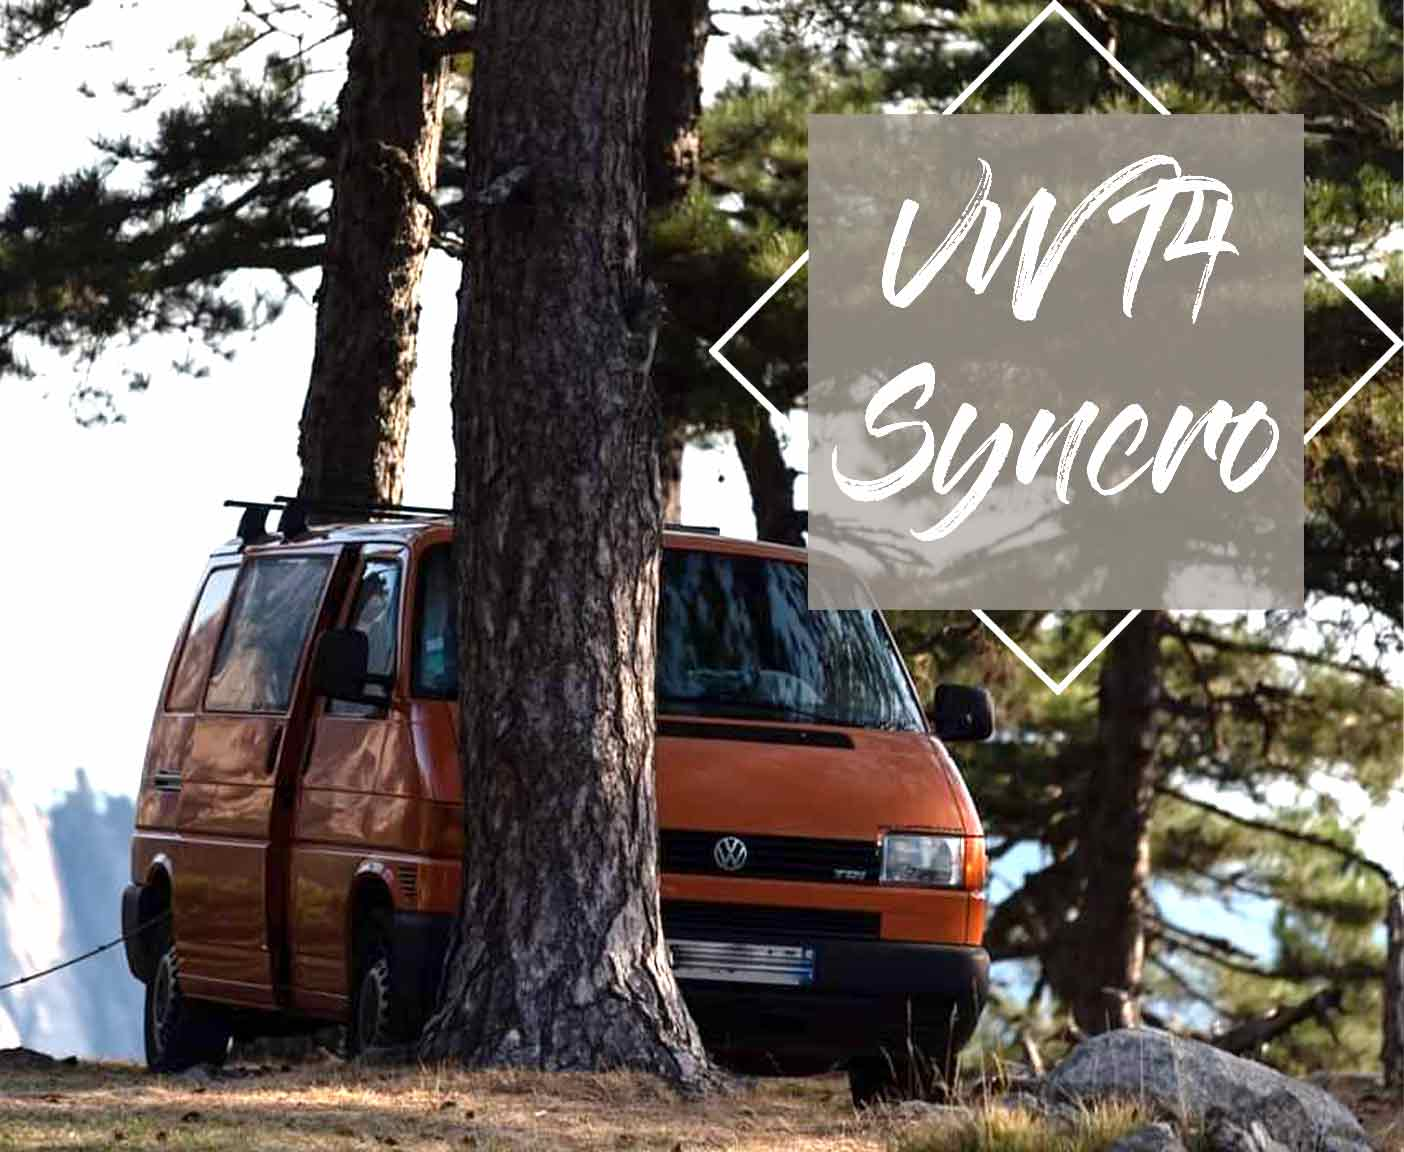 volkswagen-vw-t4-syncro-4x4-roadtrip-europe-vanlife-van-fourgon-amenage